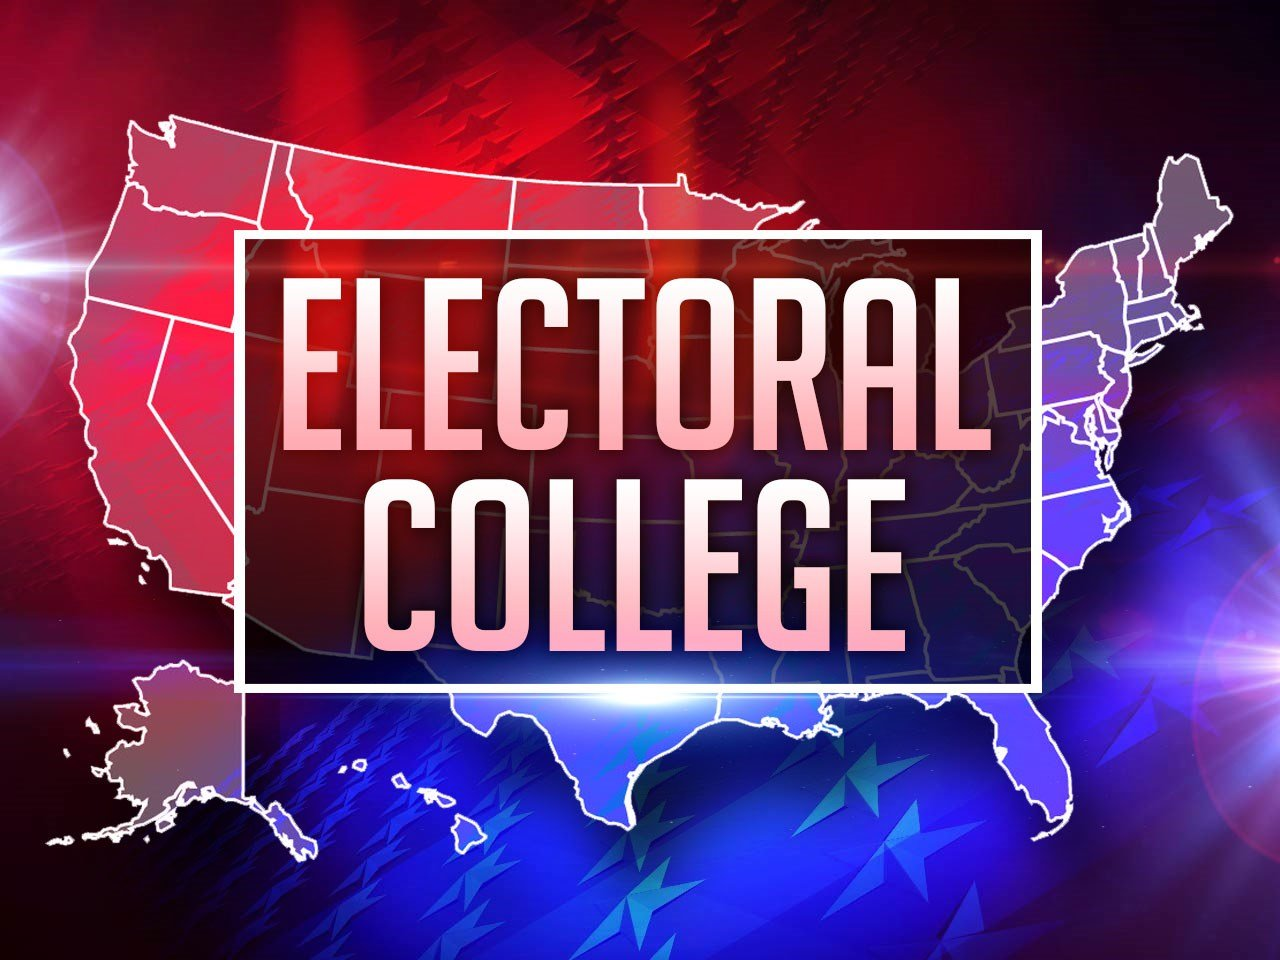 More states consider circumventing the Electoral College